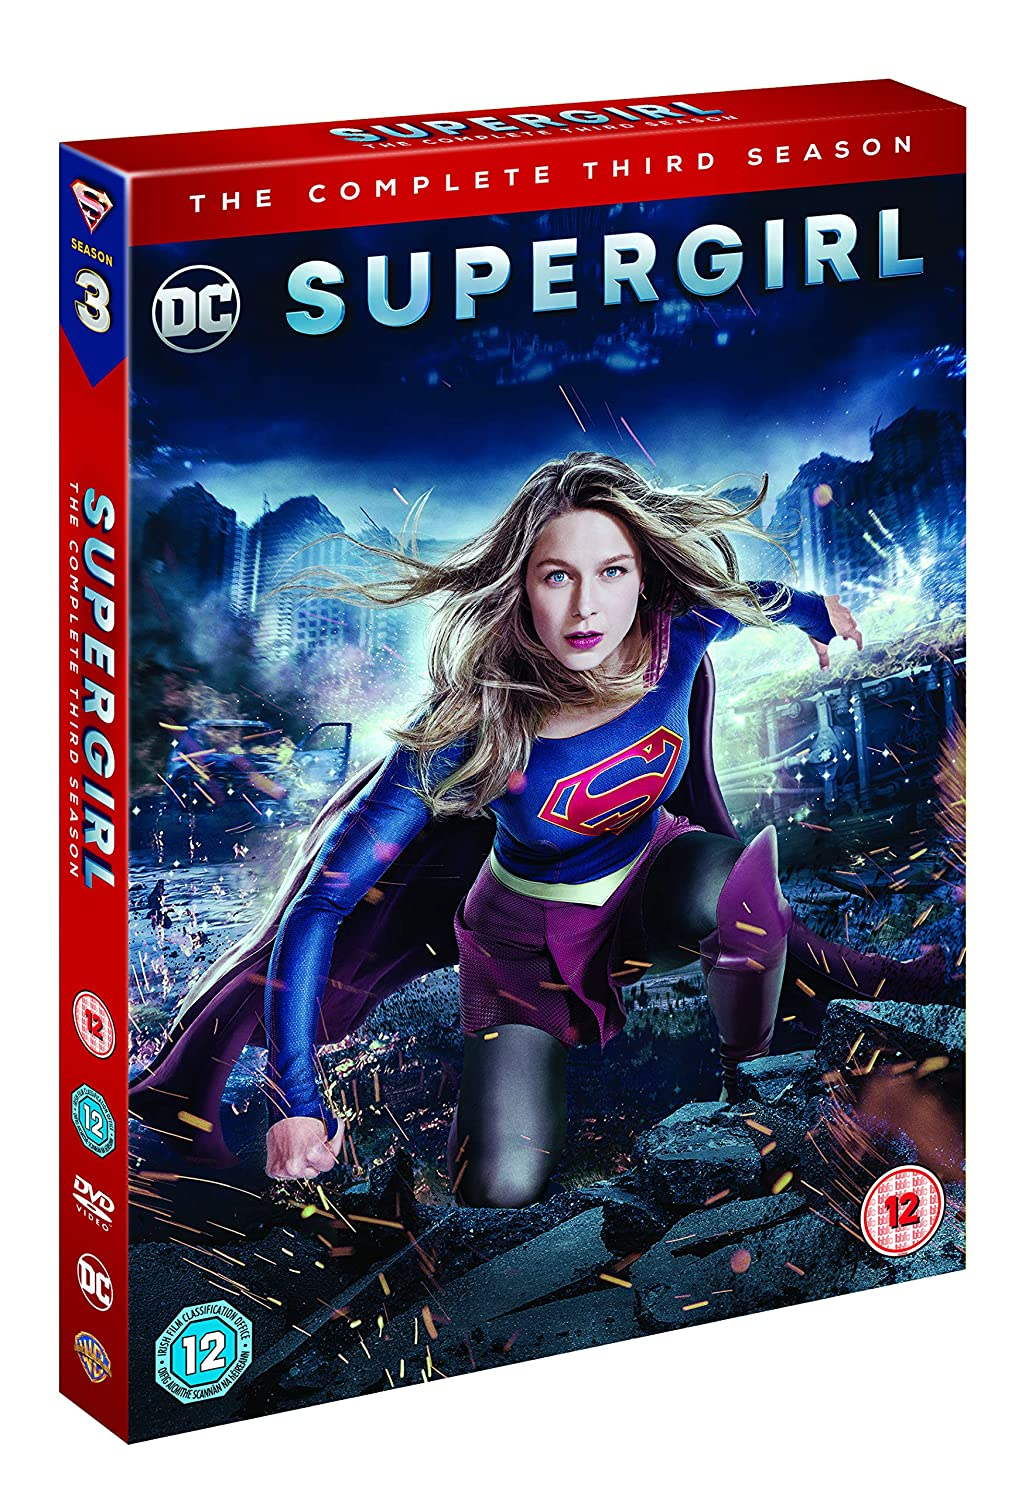 Supergirl defeated free videos watch download and enjoy